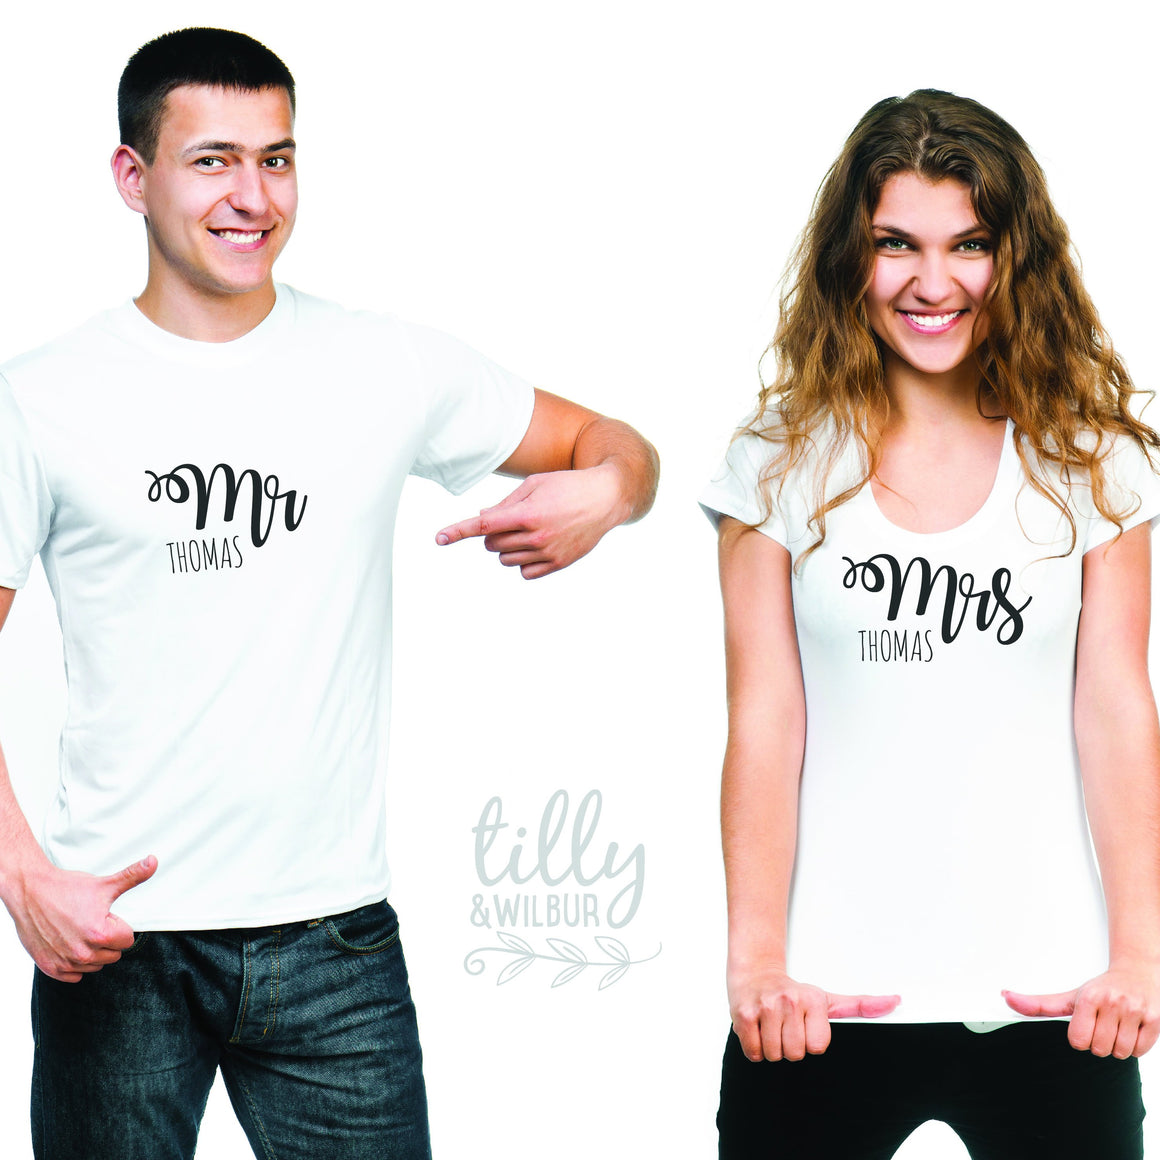 Mr and Mrs Personalised Matchy Matchy T-Shirt Set, Honeymoon Outfits, Wedding Gift, His and Hers Matching Clothing, Mr and Mrs With Surname